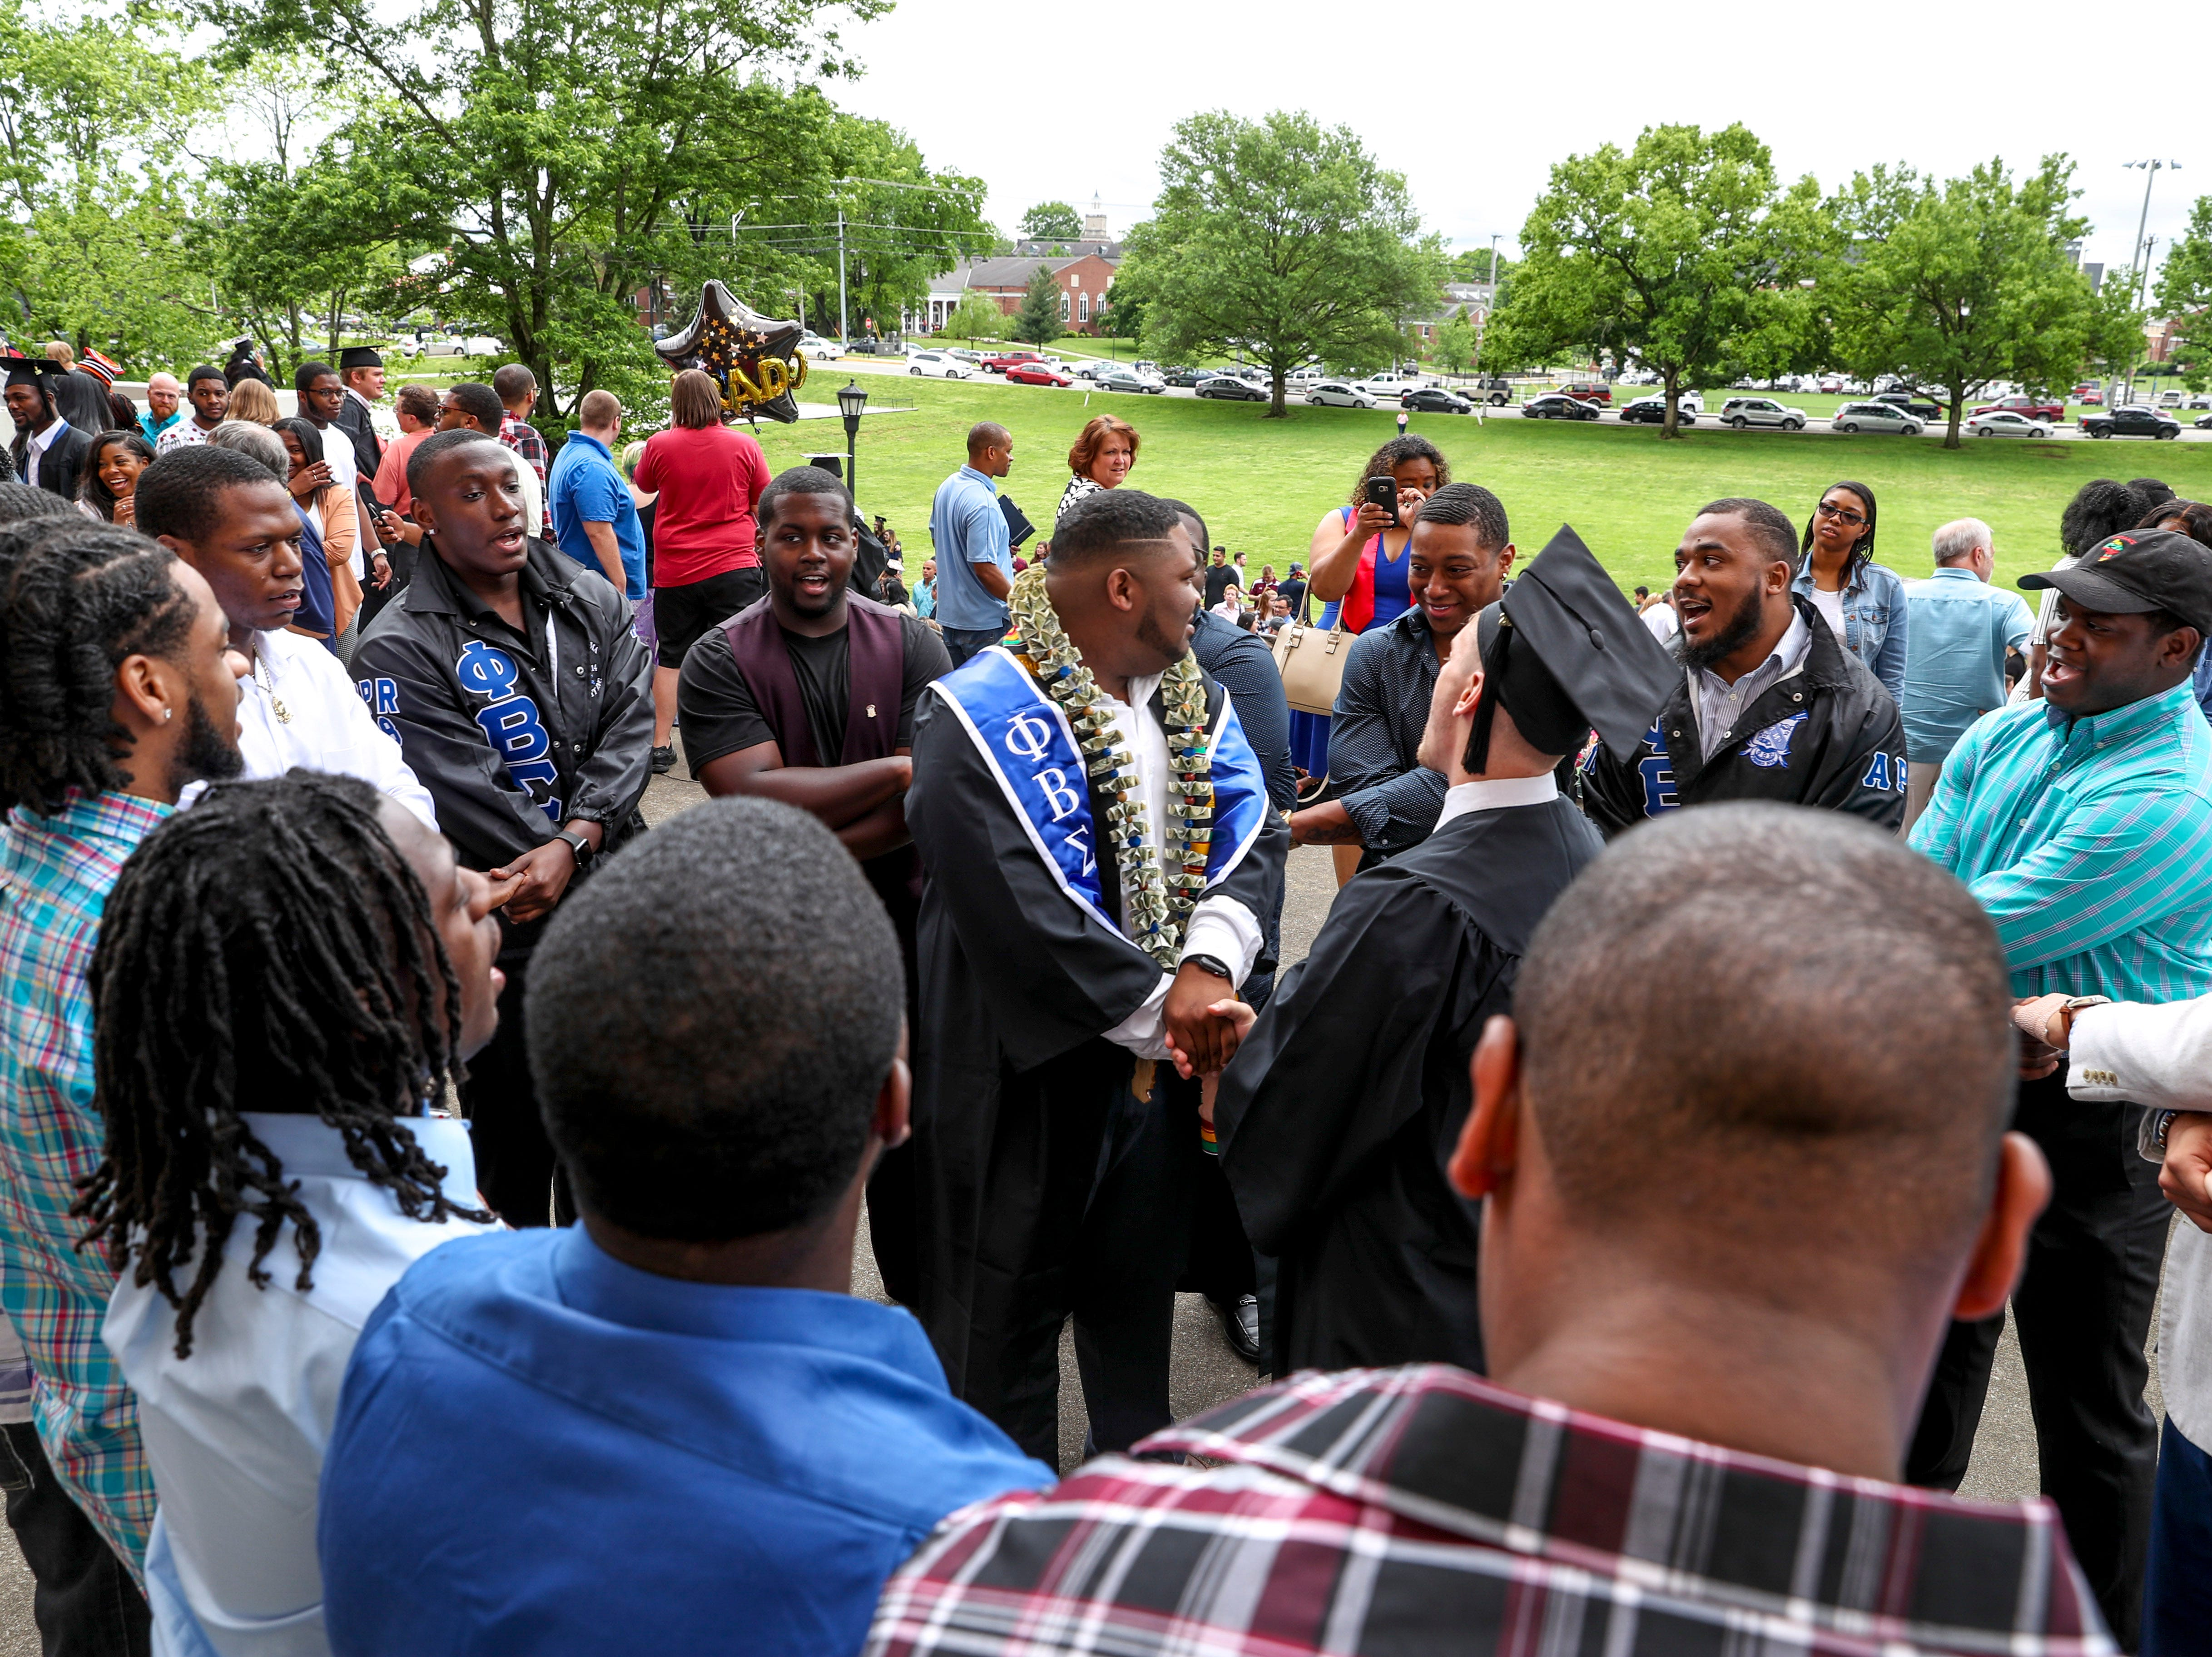 A fraternity sings together around other students at the Austin Peay spring commencement ceremony 2019 for College of Business and College of STEM at Winfield Dunn Center in Clarksville, Tenn., on Friday, May 3, 2019.